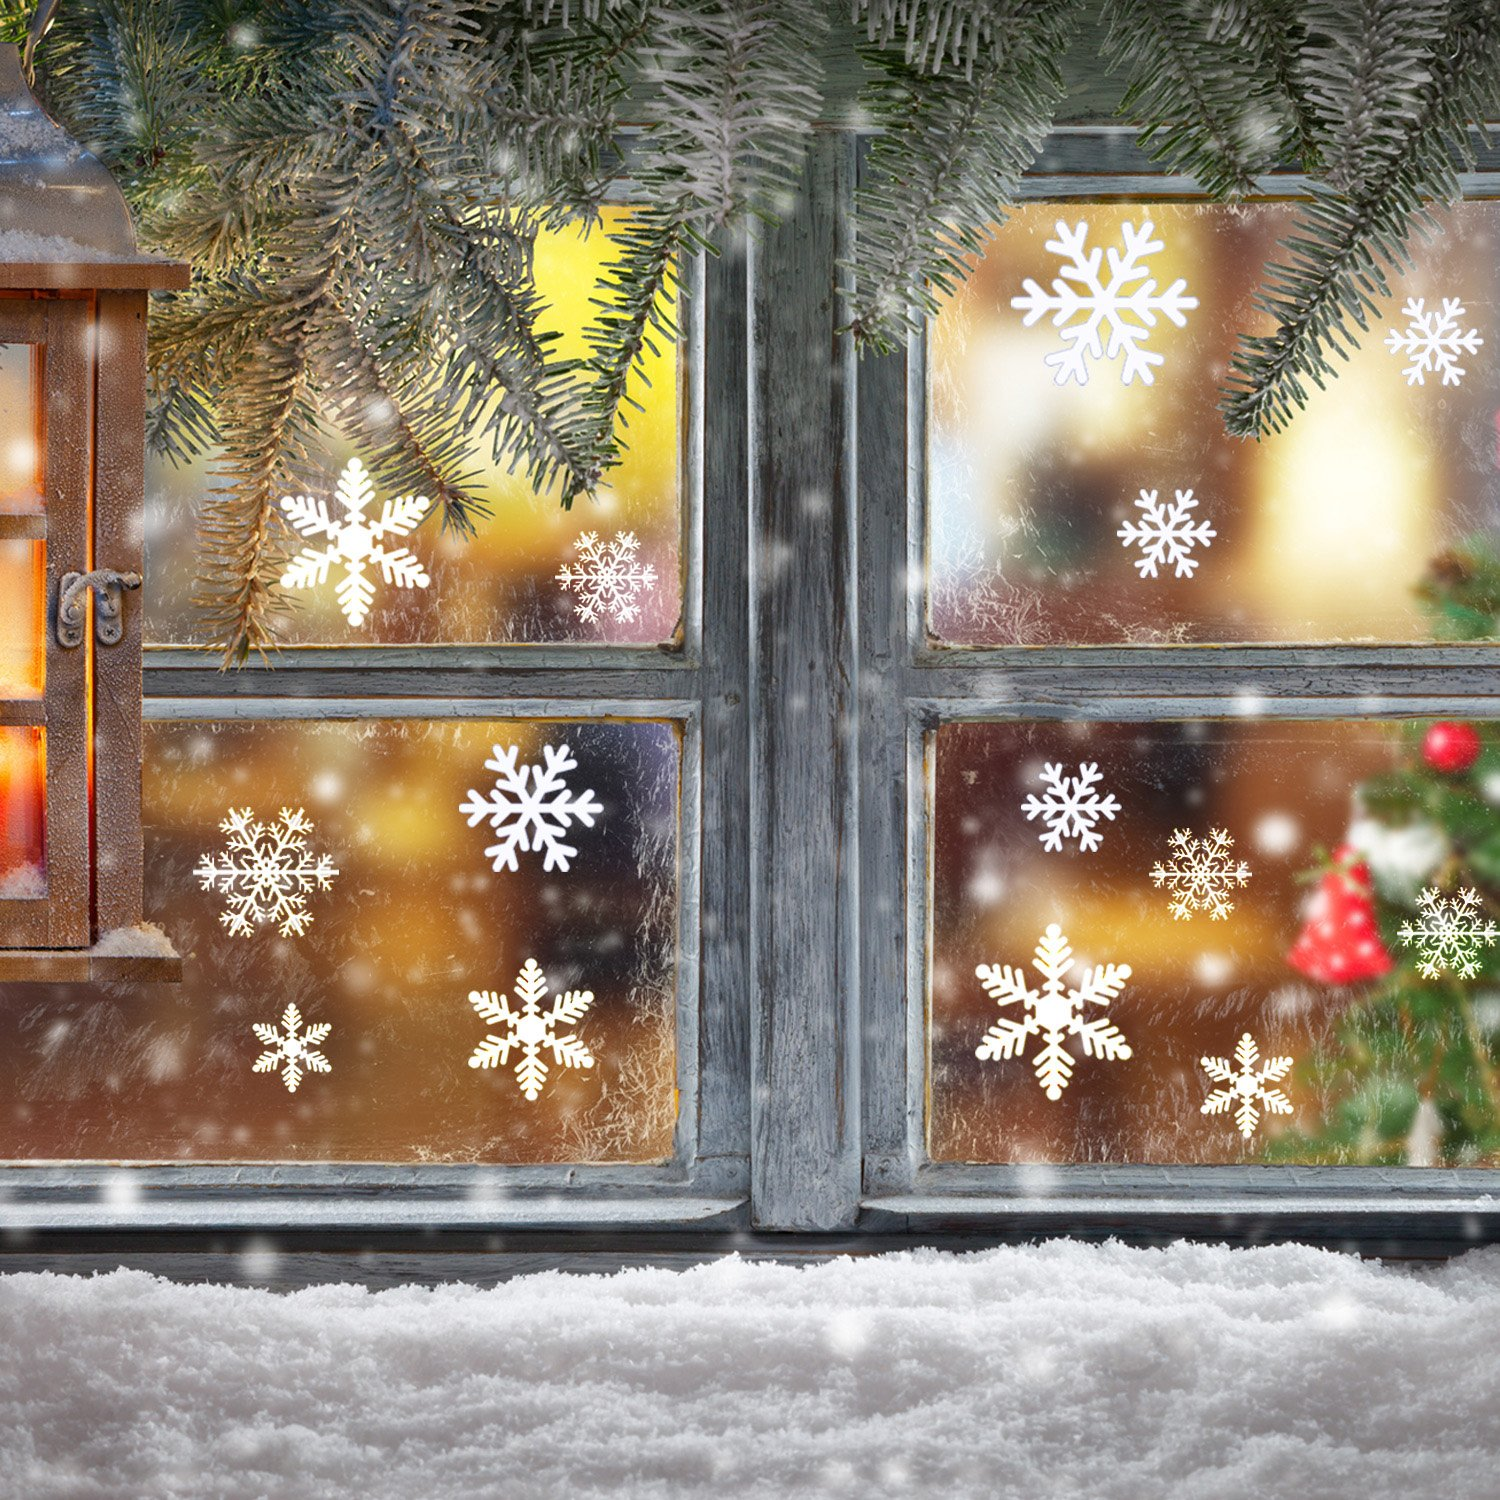 blulu snowflake window clings sheet vinyl window decorations for christmas gifts and home party decals